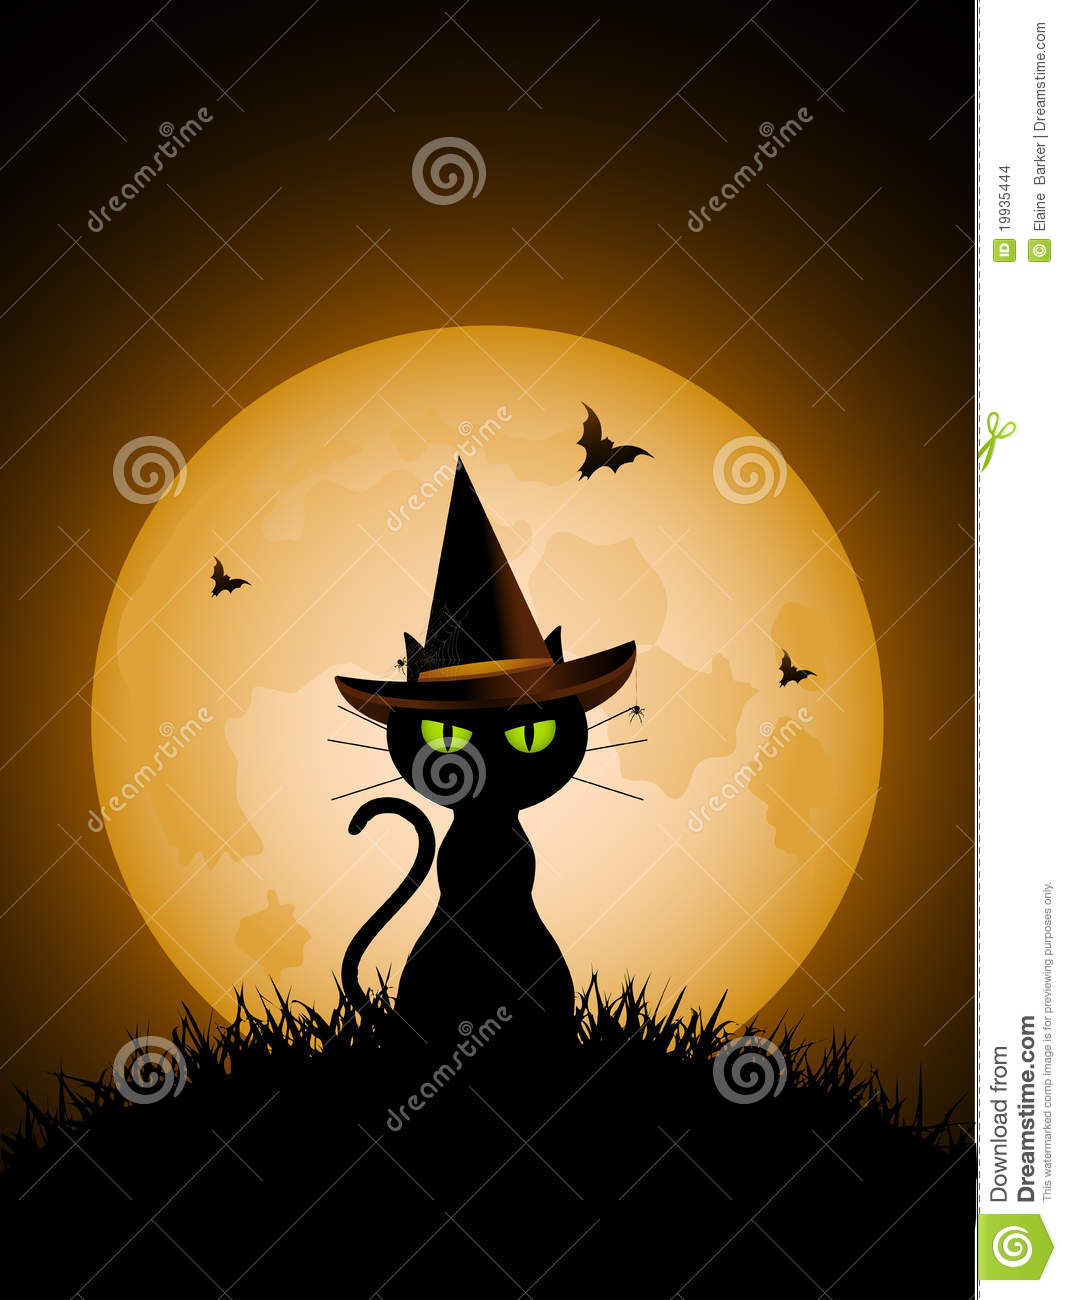 Black cat with green eyes wearing witches hat in front of a full moon.